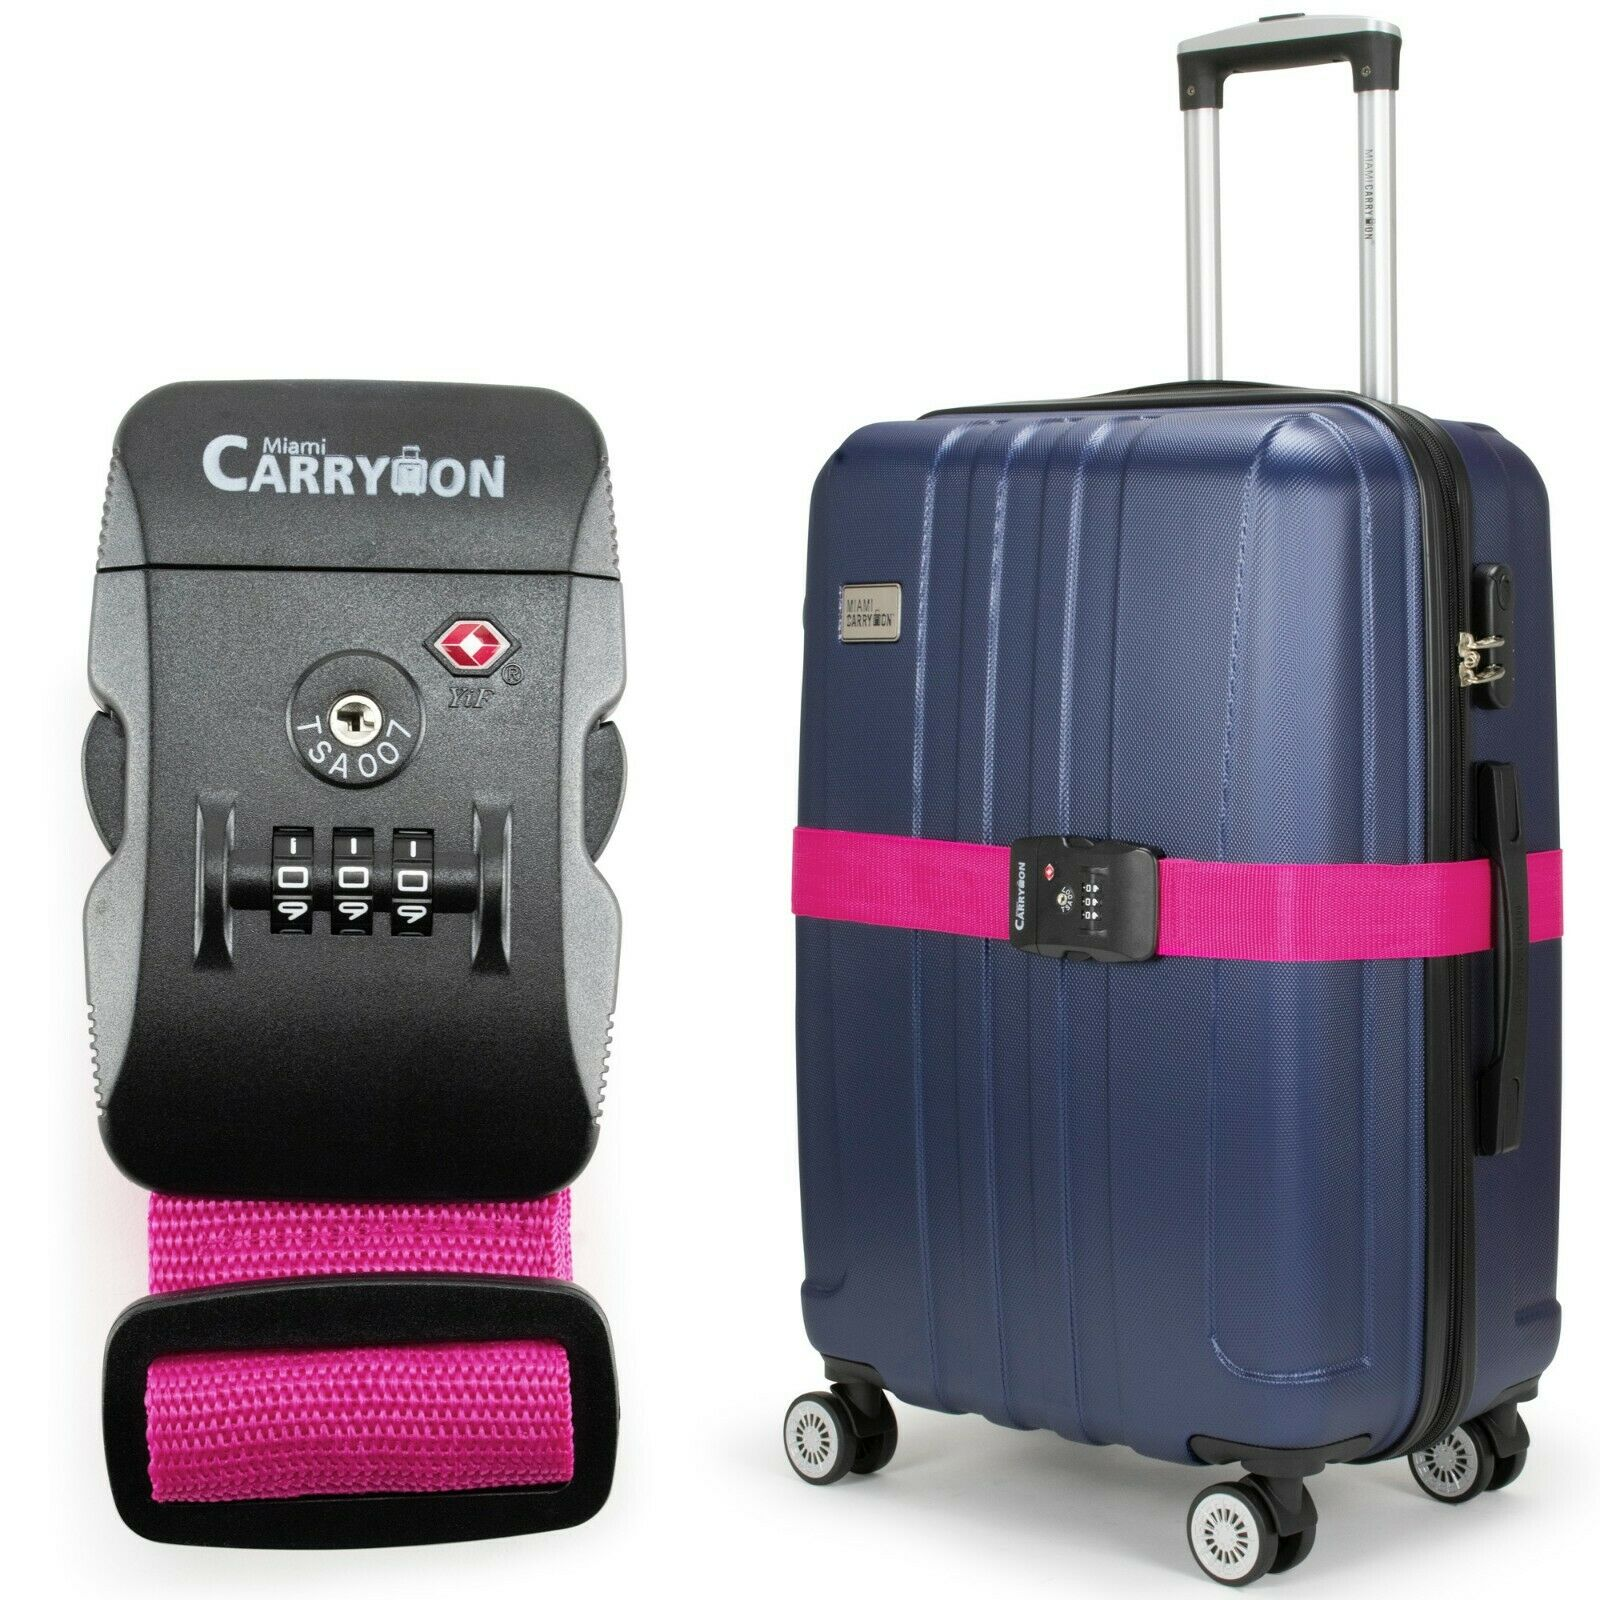 Miami CarryOn Adjustable Luggage Strap with a Built-in TSA Combination Lock Pink